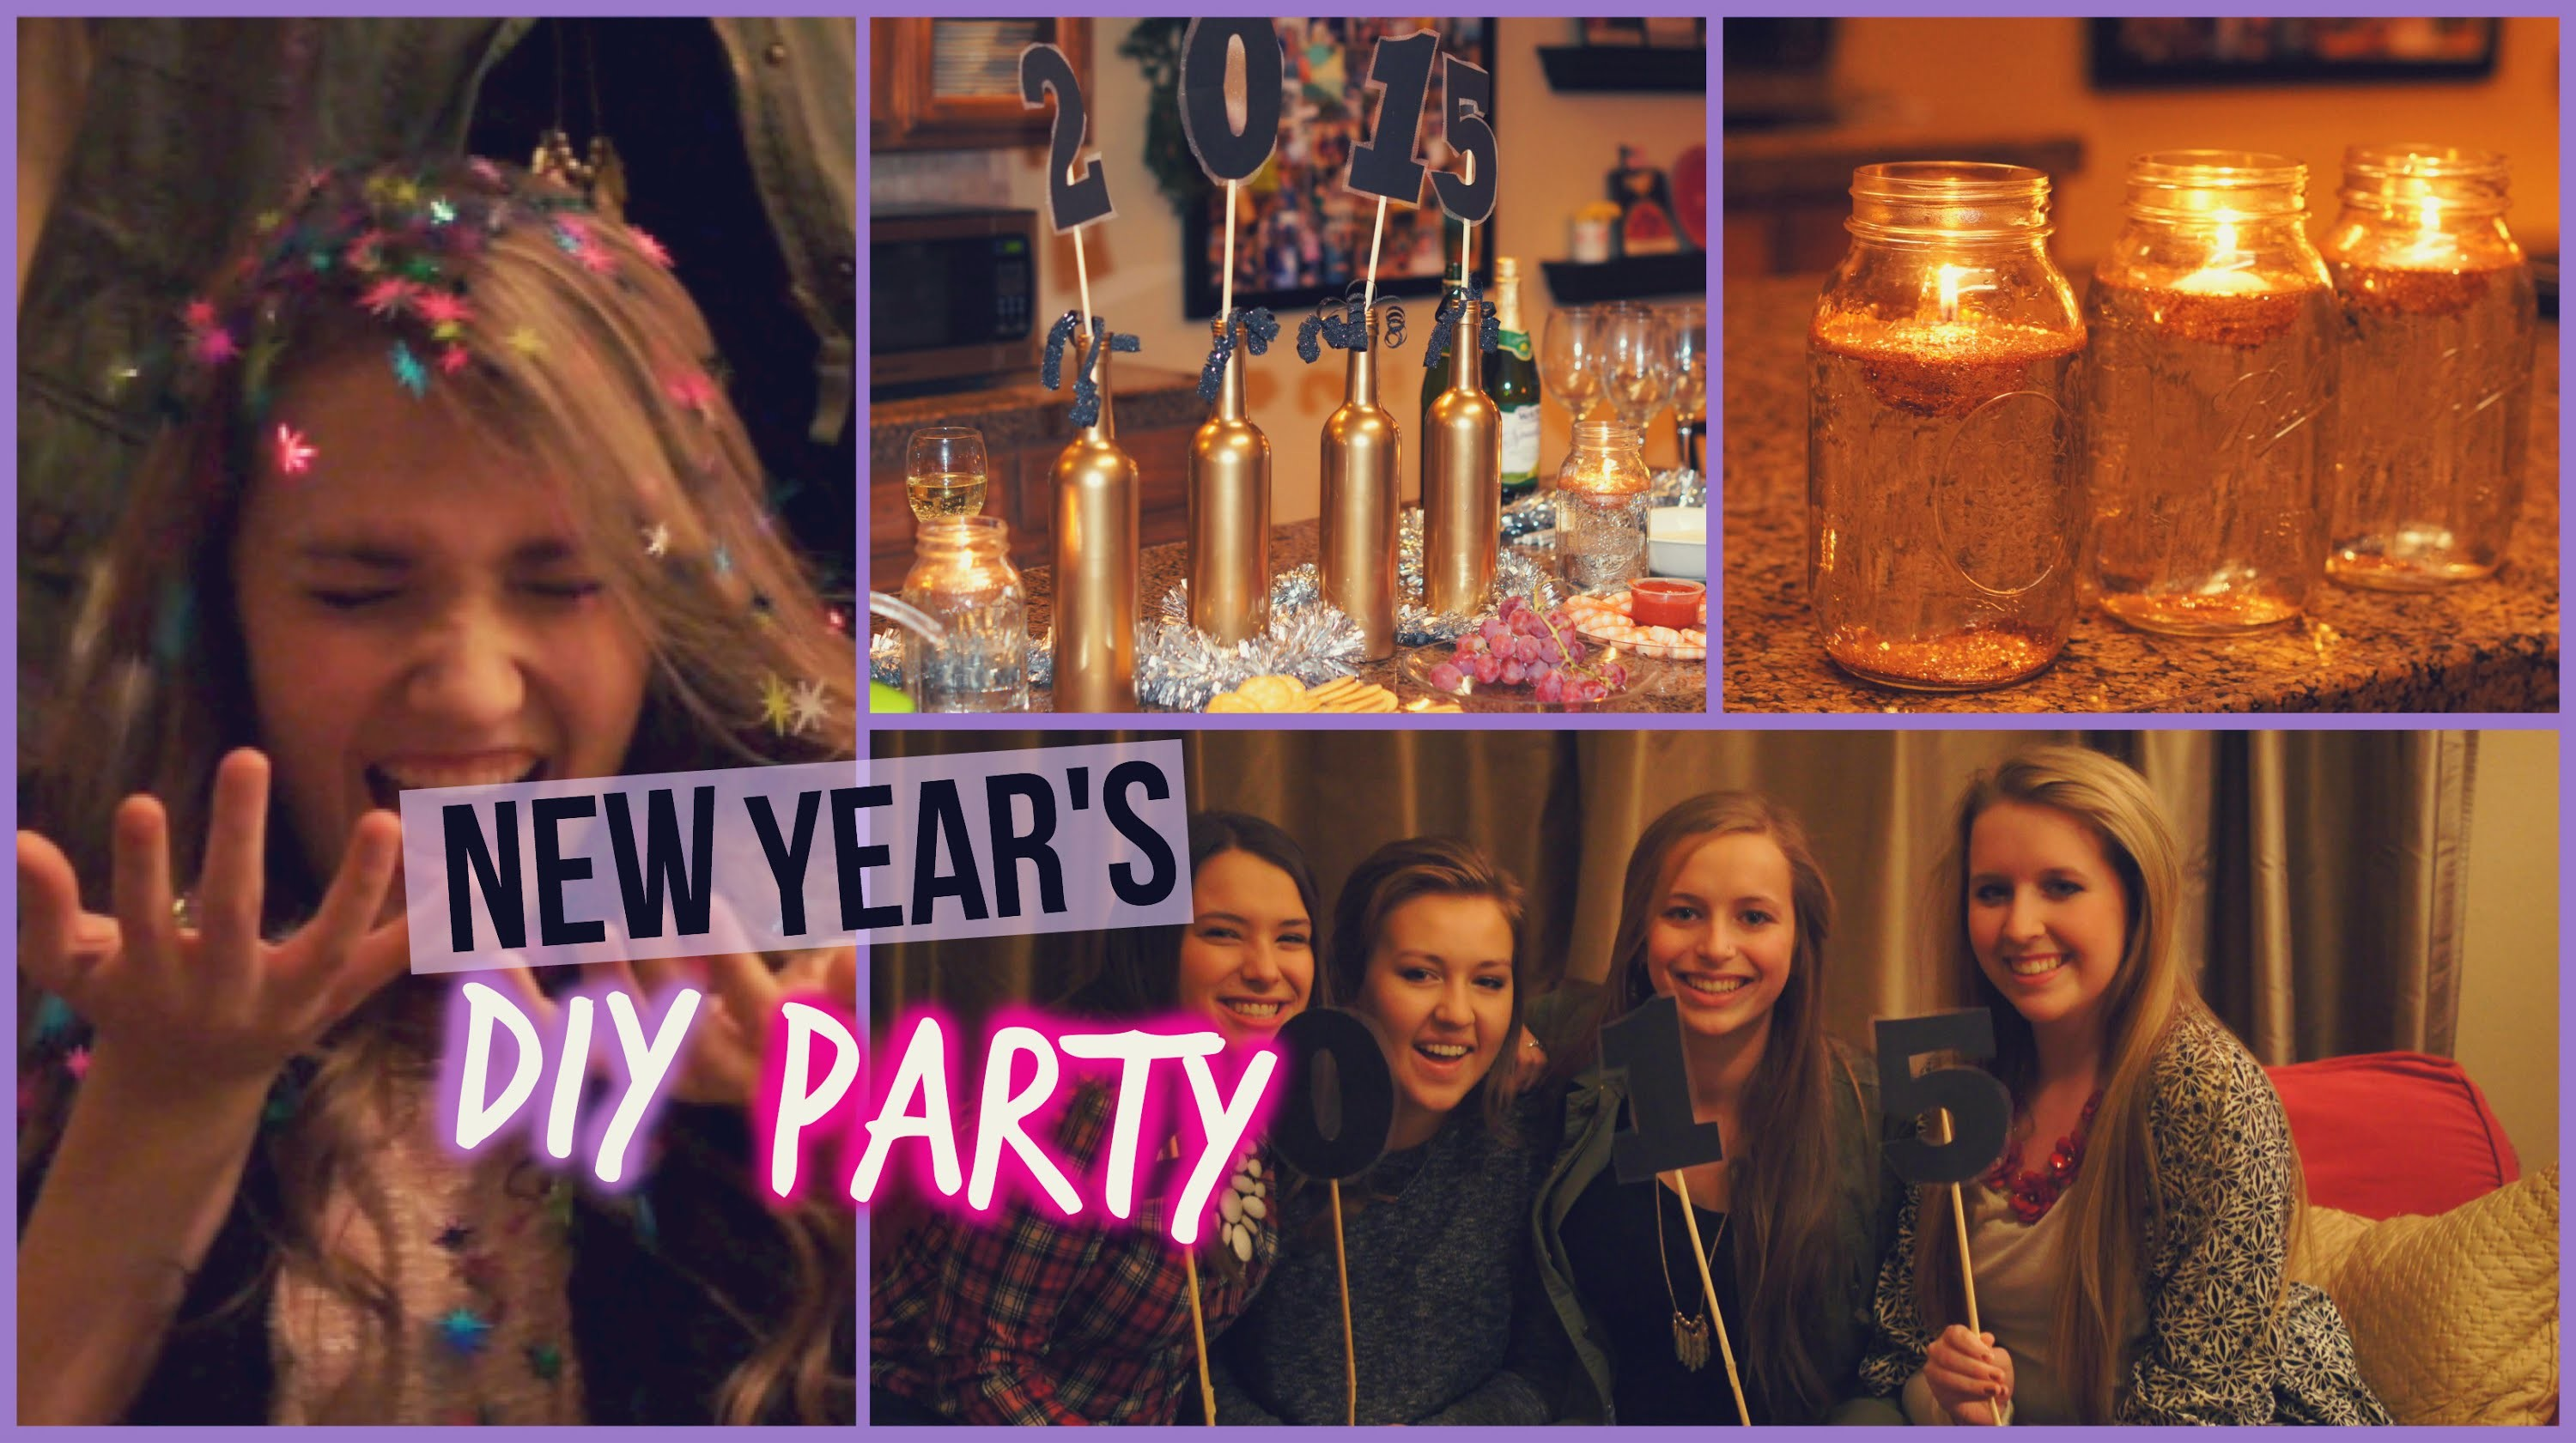 DIY New Year's Party: Snacks & Decorations!